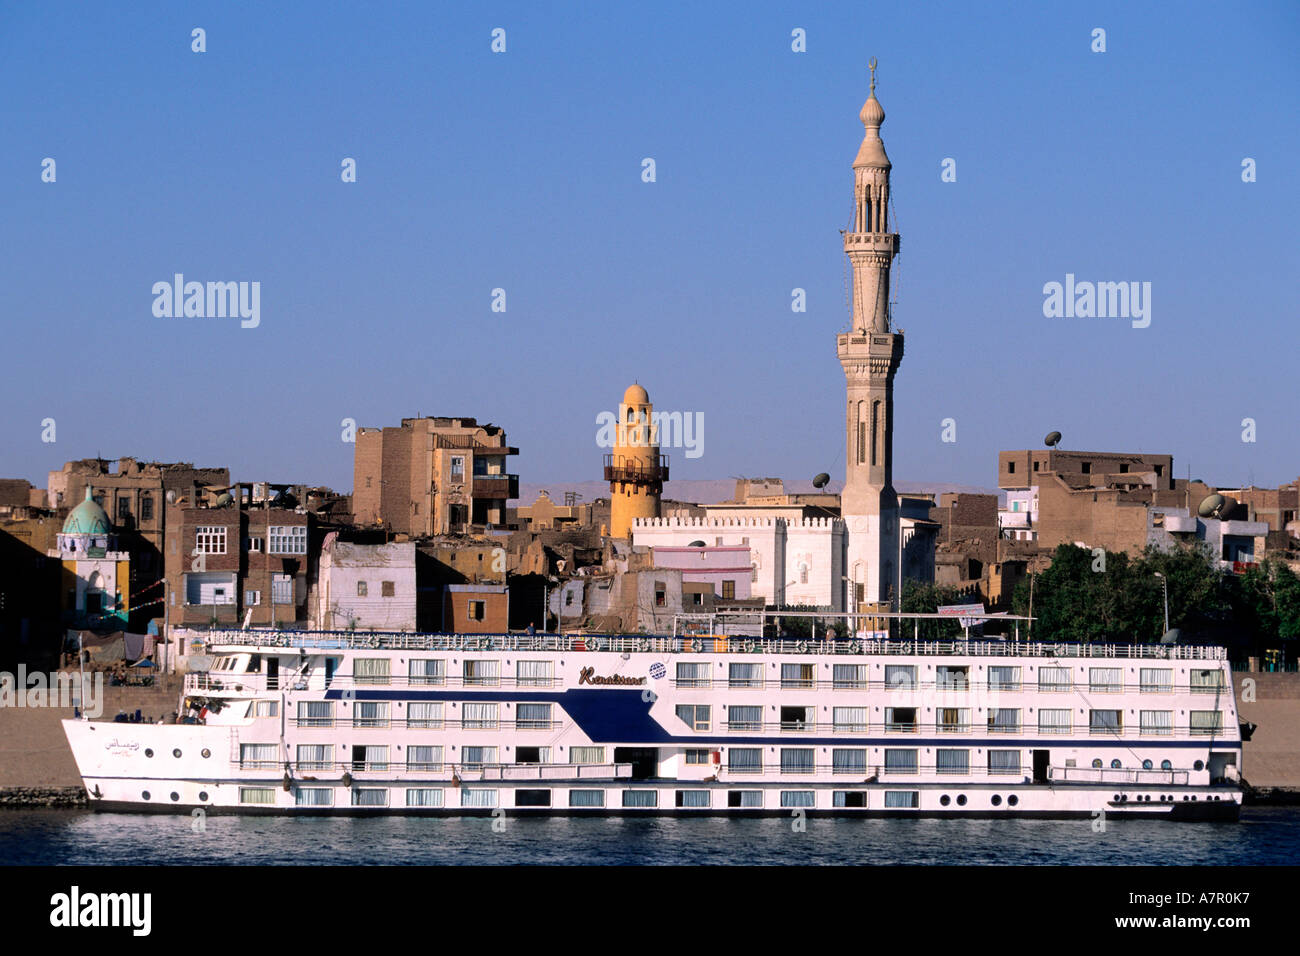 Egypt, Edfou, cruise ship on the Nile river - Stock Image